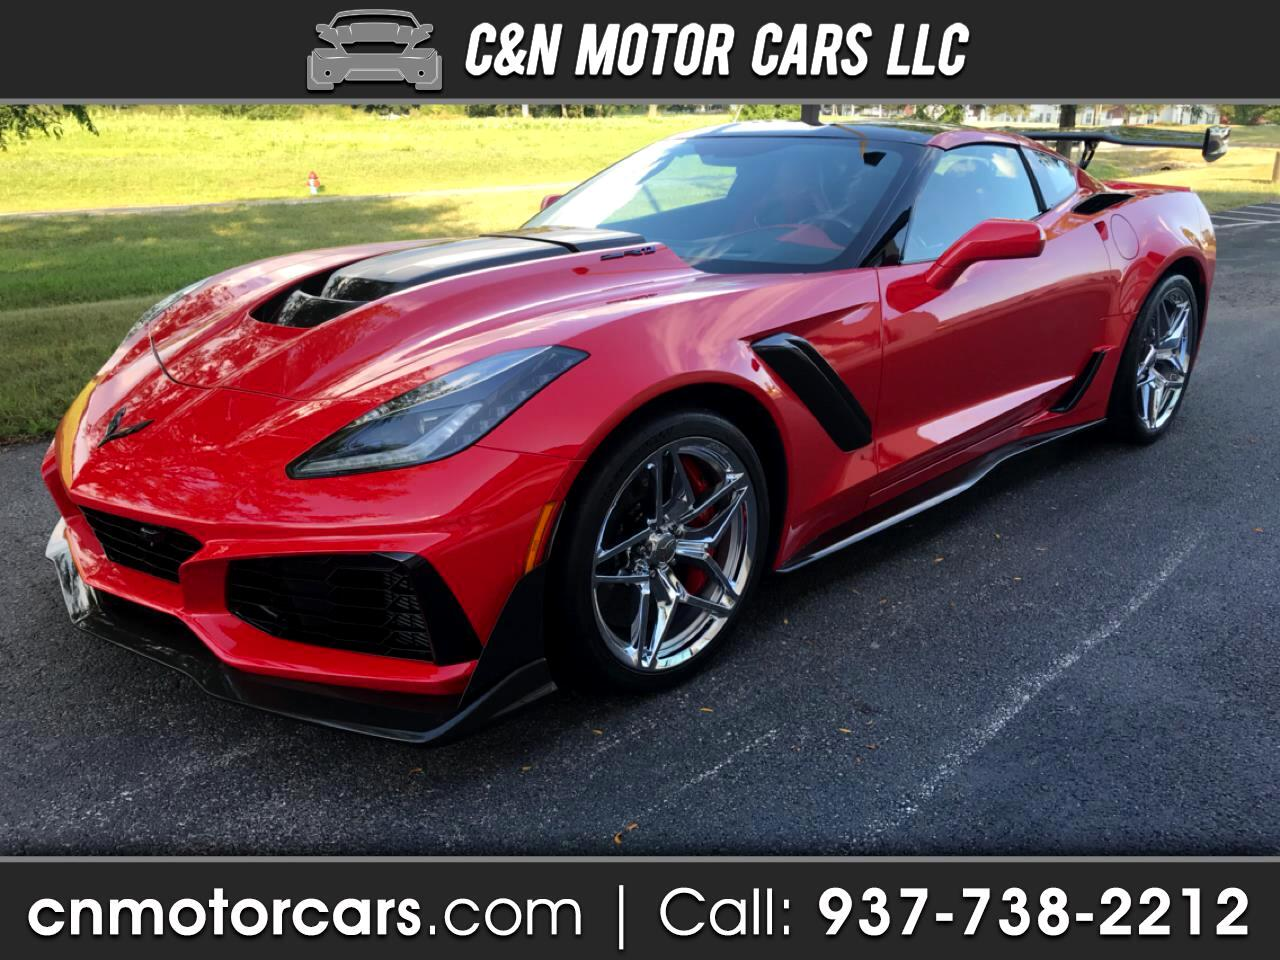 2019 Chevrolet Corvette ZR1 Premium 3ZR Coupe Manual